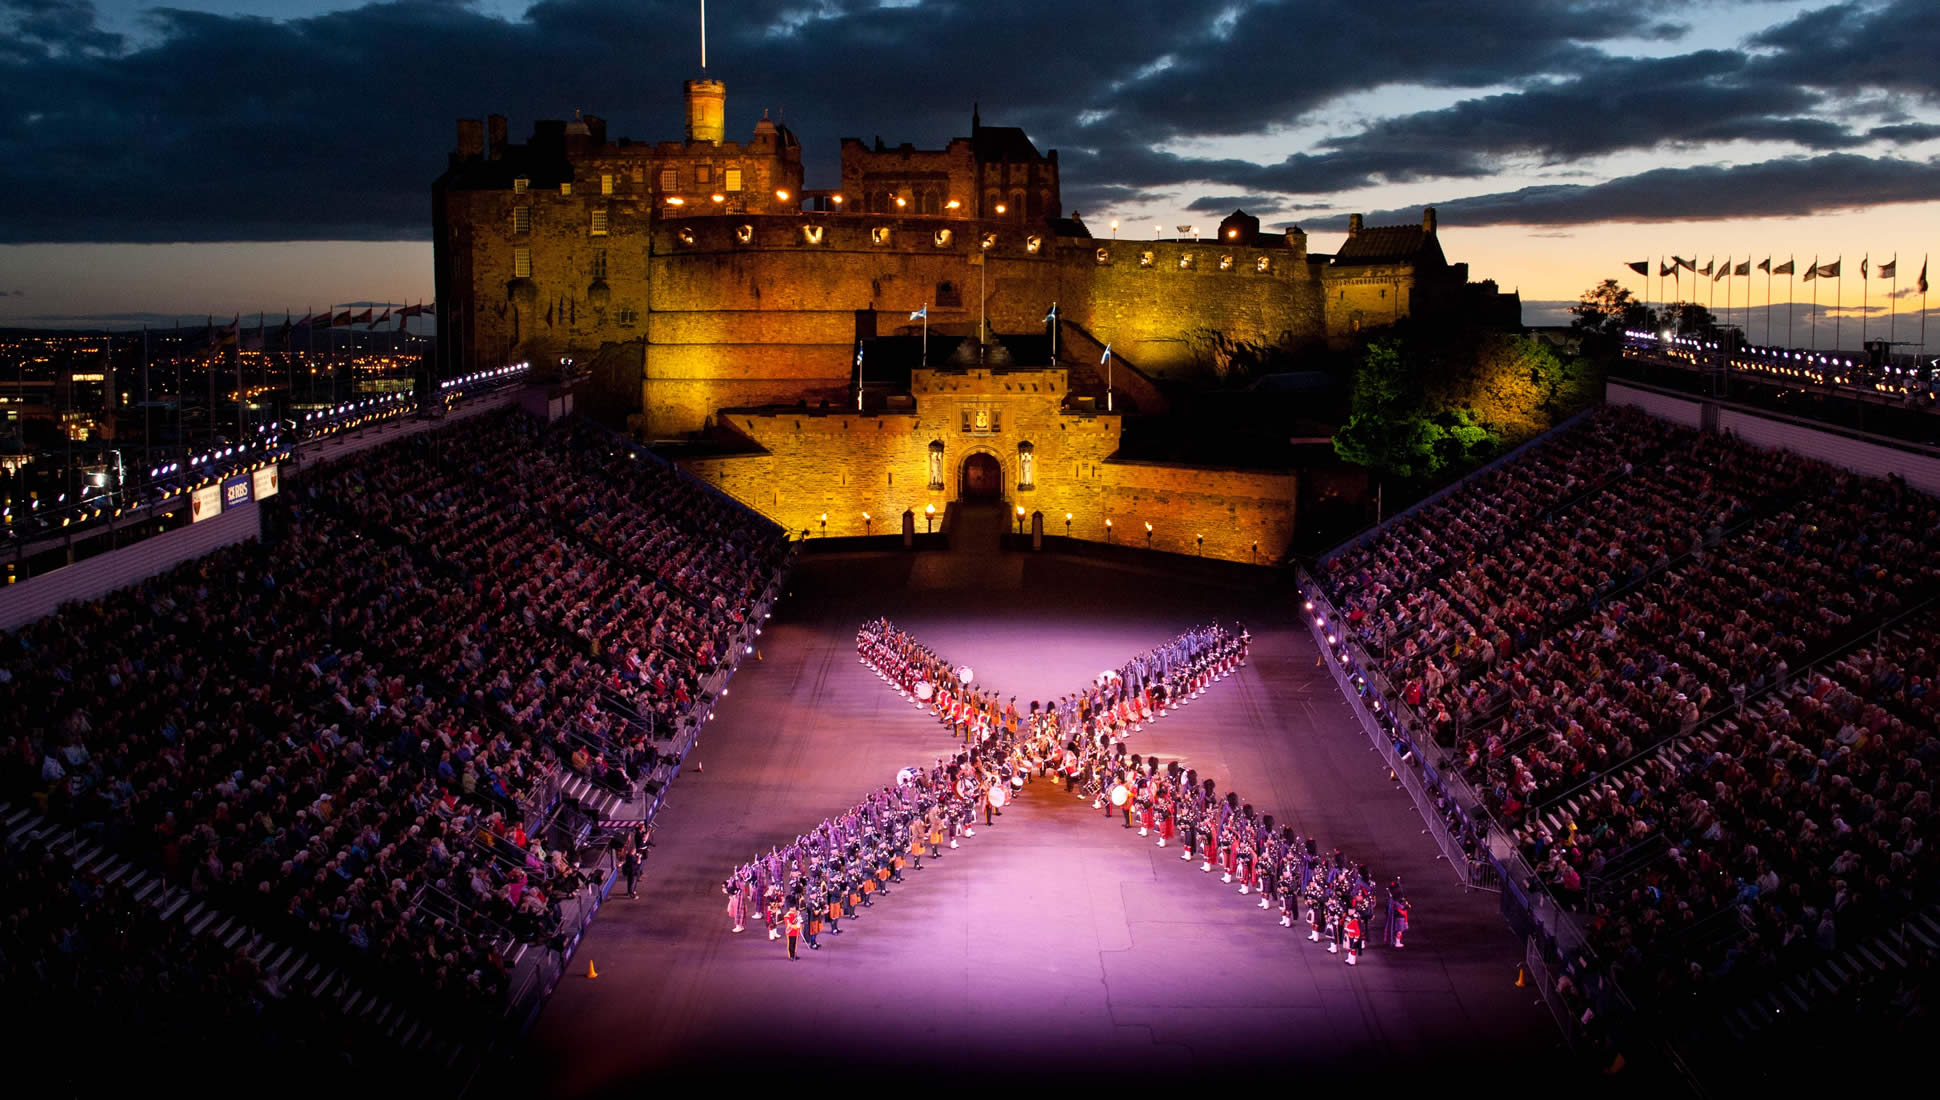 Things to do - The Royal Edinburgh Military Tattoo